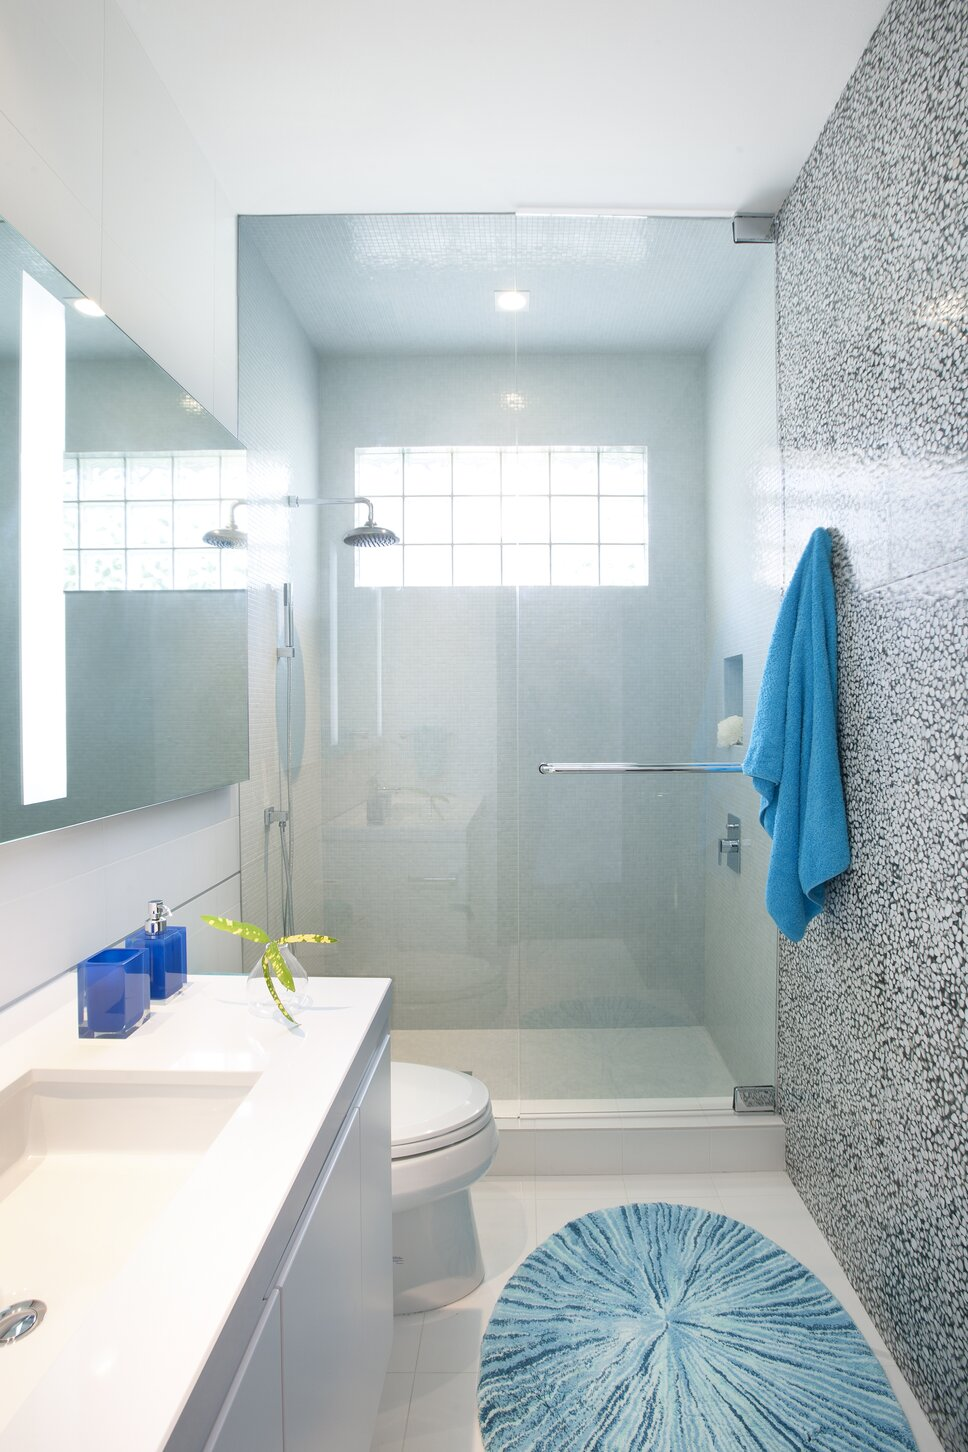 Residential interior design project in Miami, FL. Photos by Alexia Fodere. Modern Bathroom design